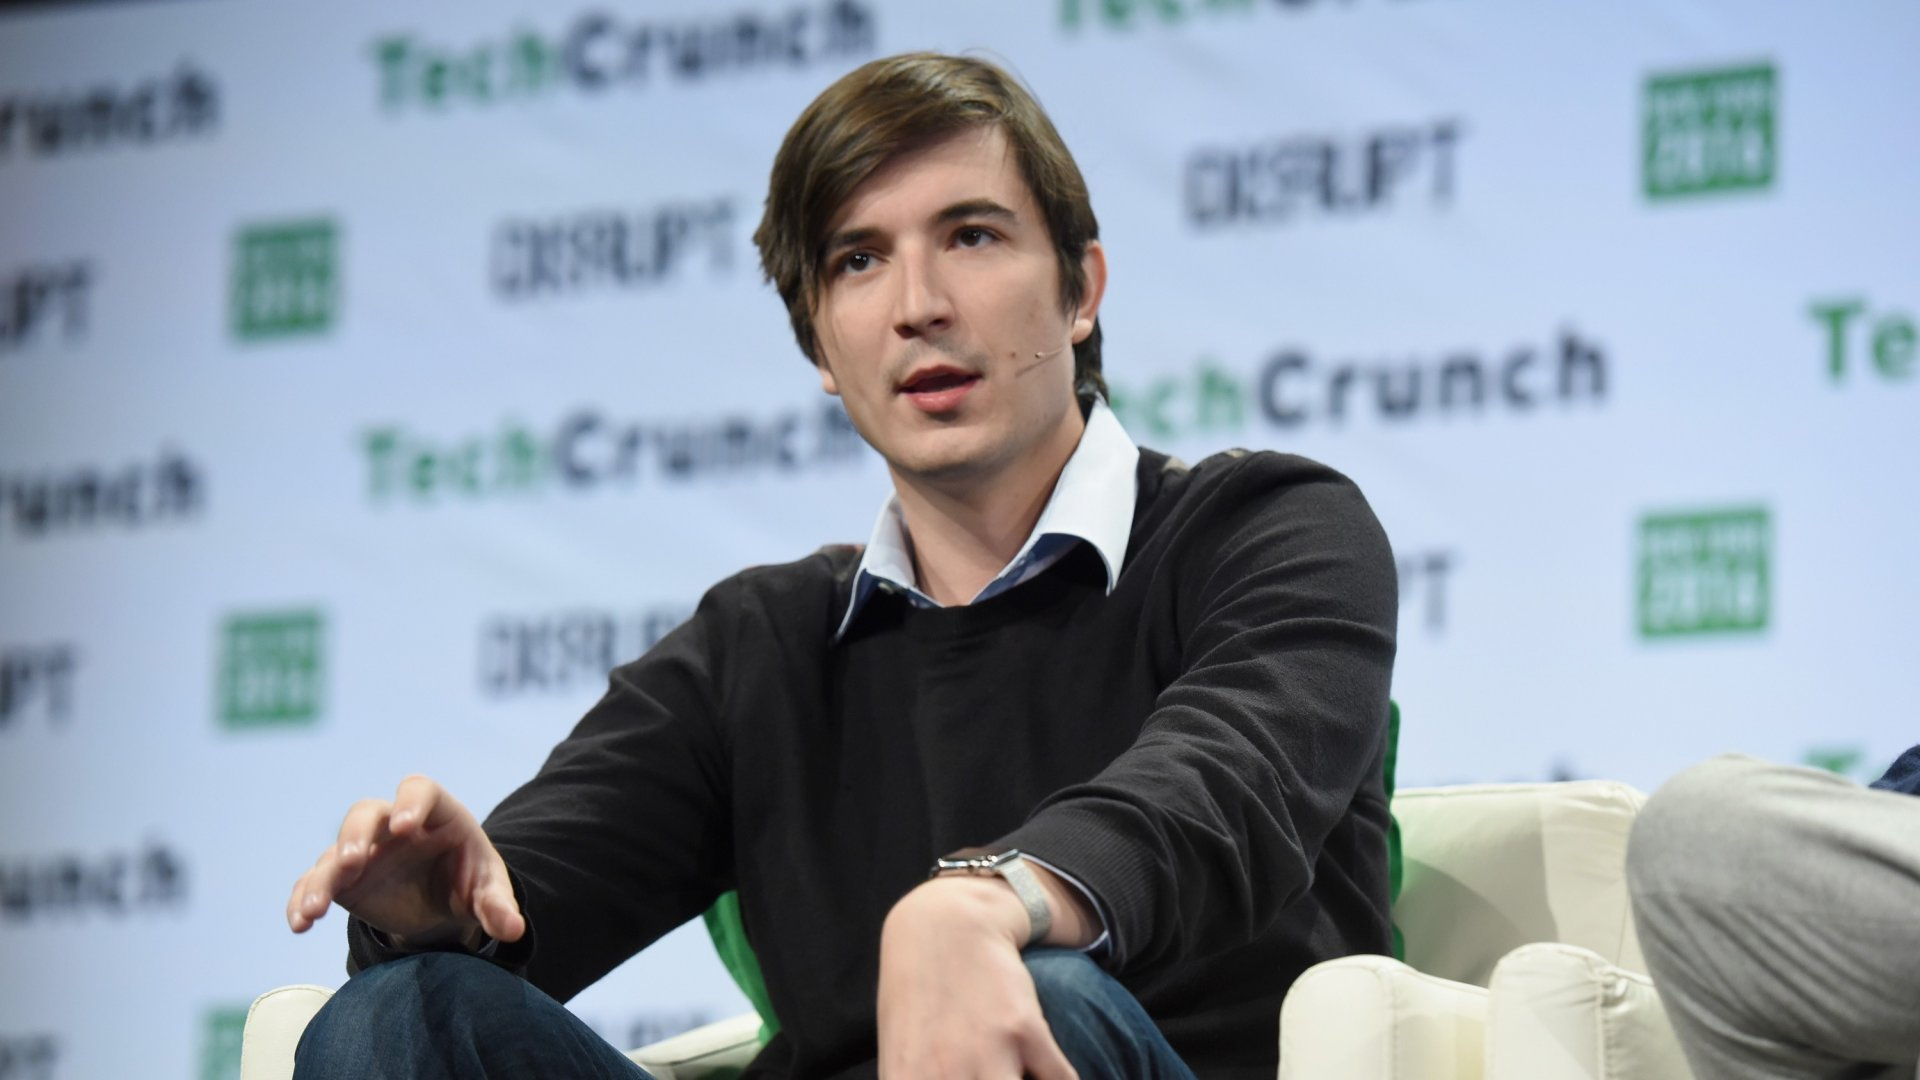 NEW YORK, NY - MAY 10:  Co-founder and co-CEO of Robinhood Vladimir Tenev speaks onstage during TechCrunch Disrupt NY 2016 at Brooklyn Cruise Terminal on May 10, 2016 in New York City.